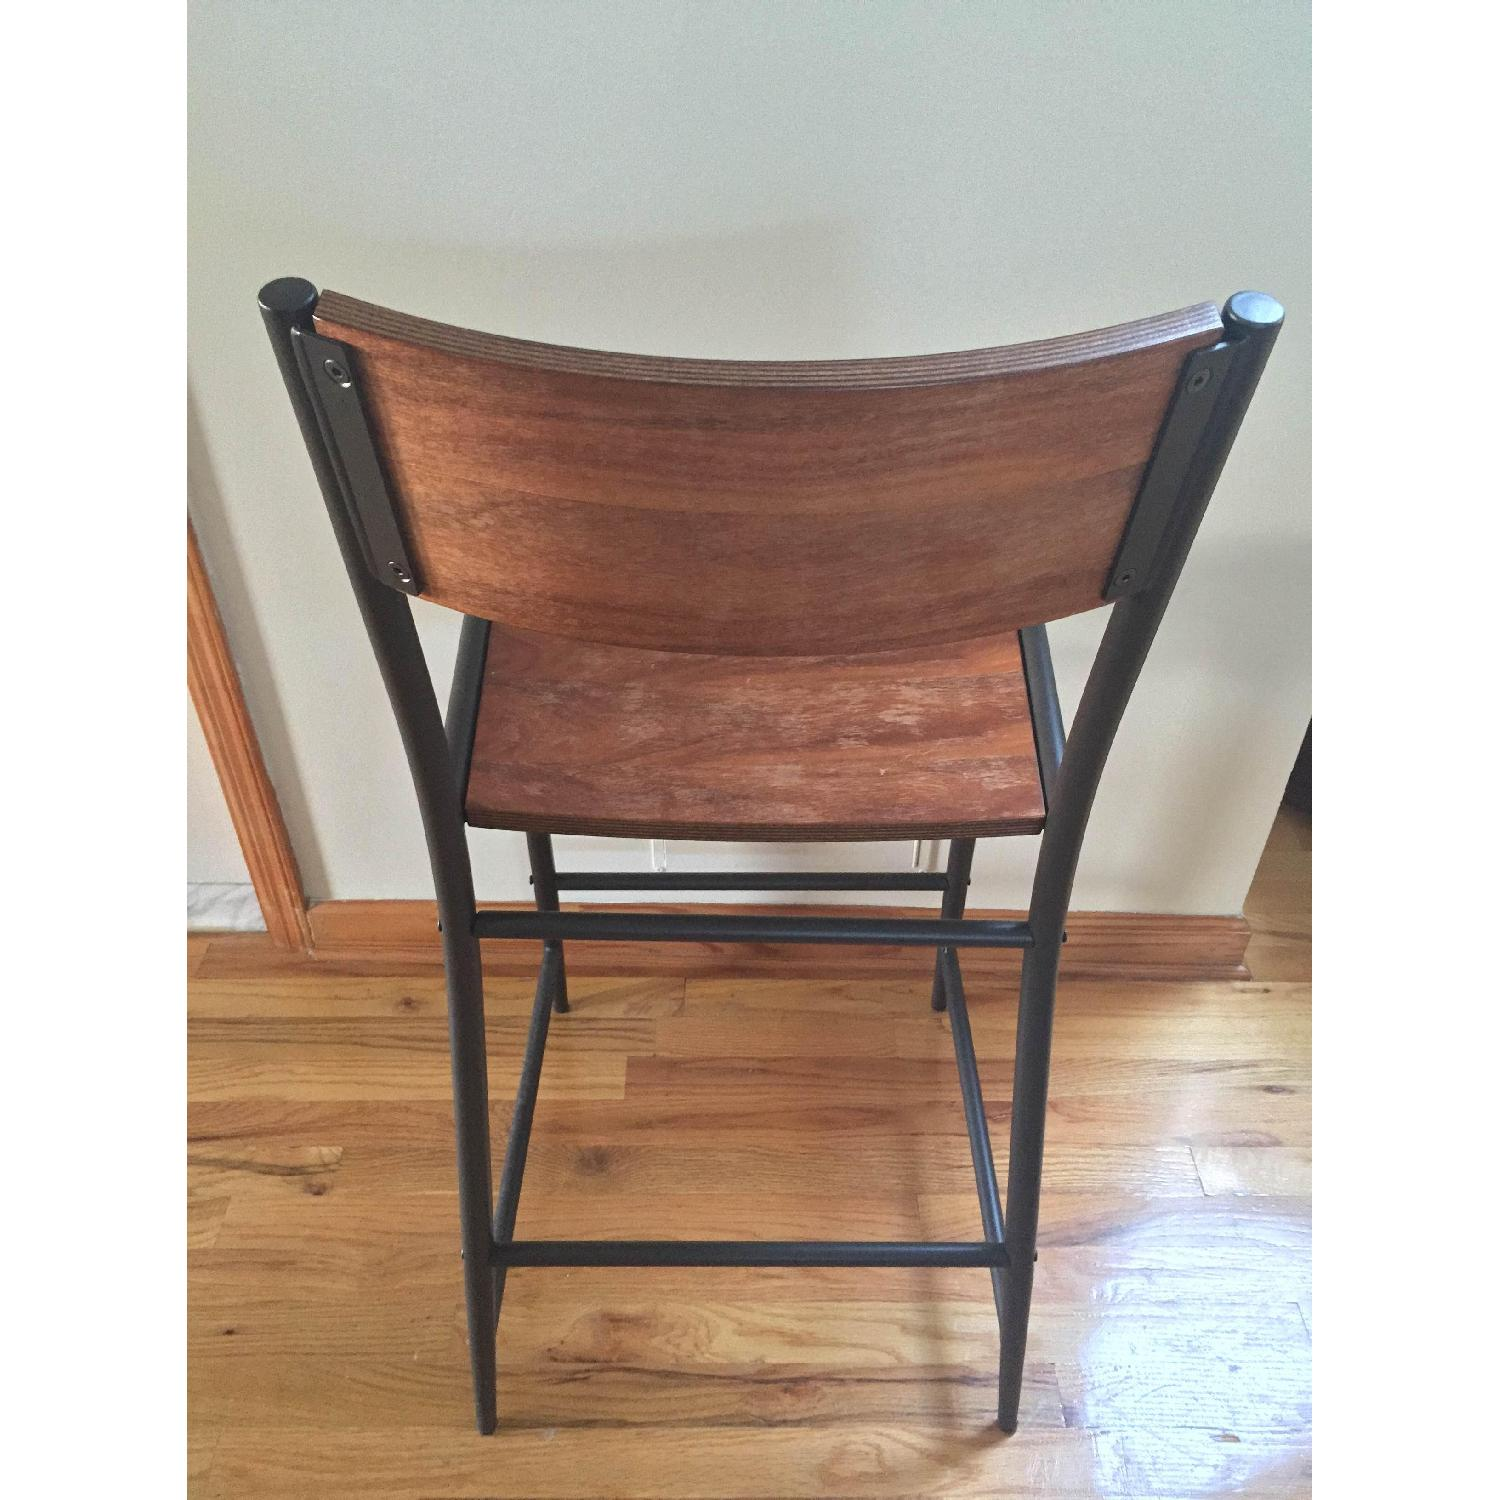 West Elm Table w/ 2 Chairs - image-9